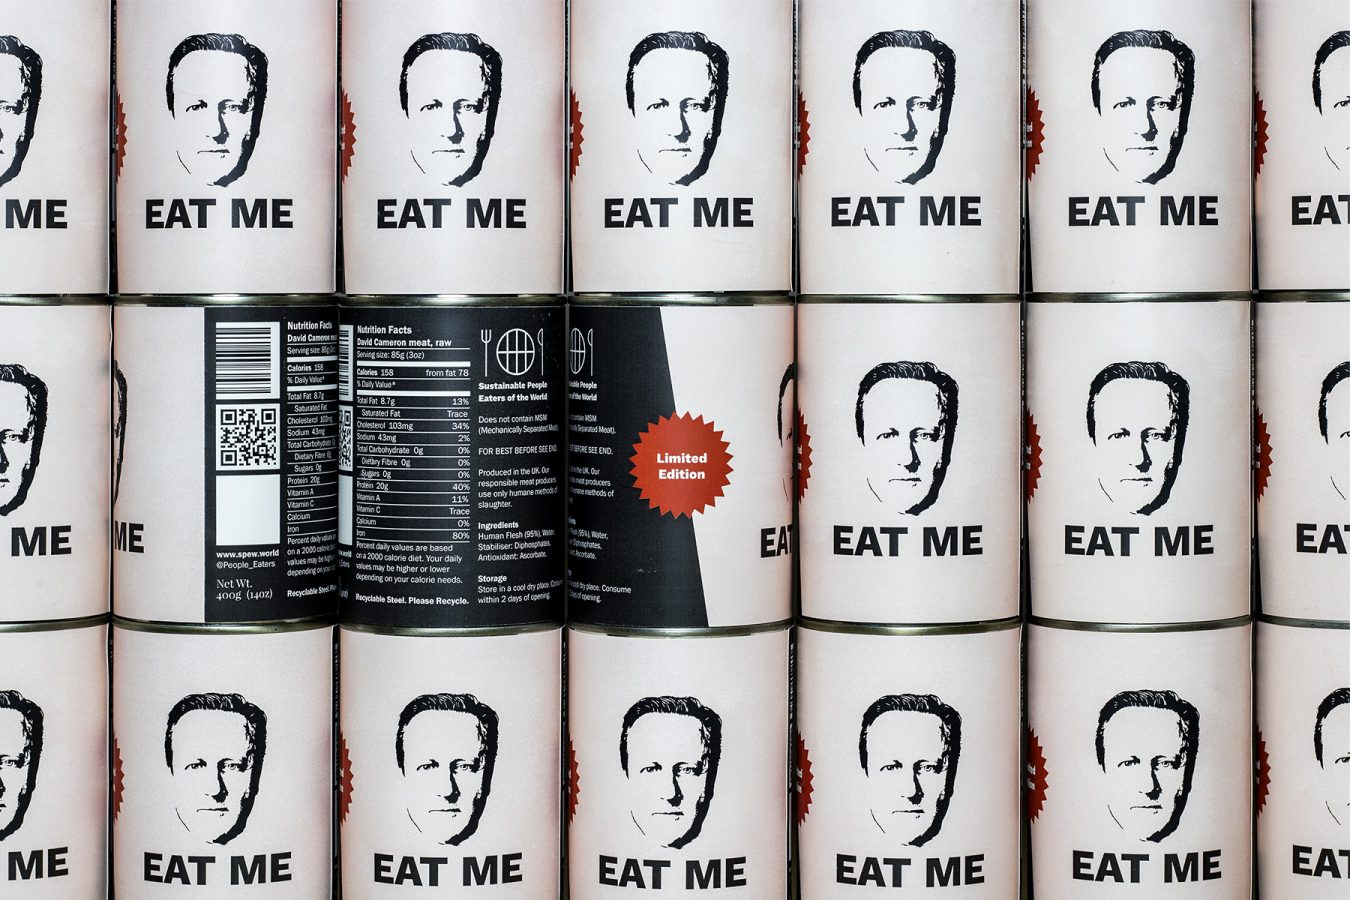 David Cameron in a Can